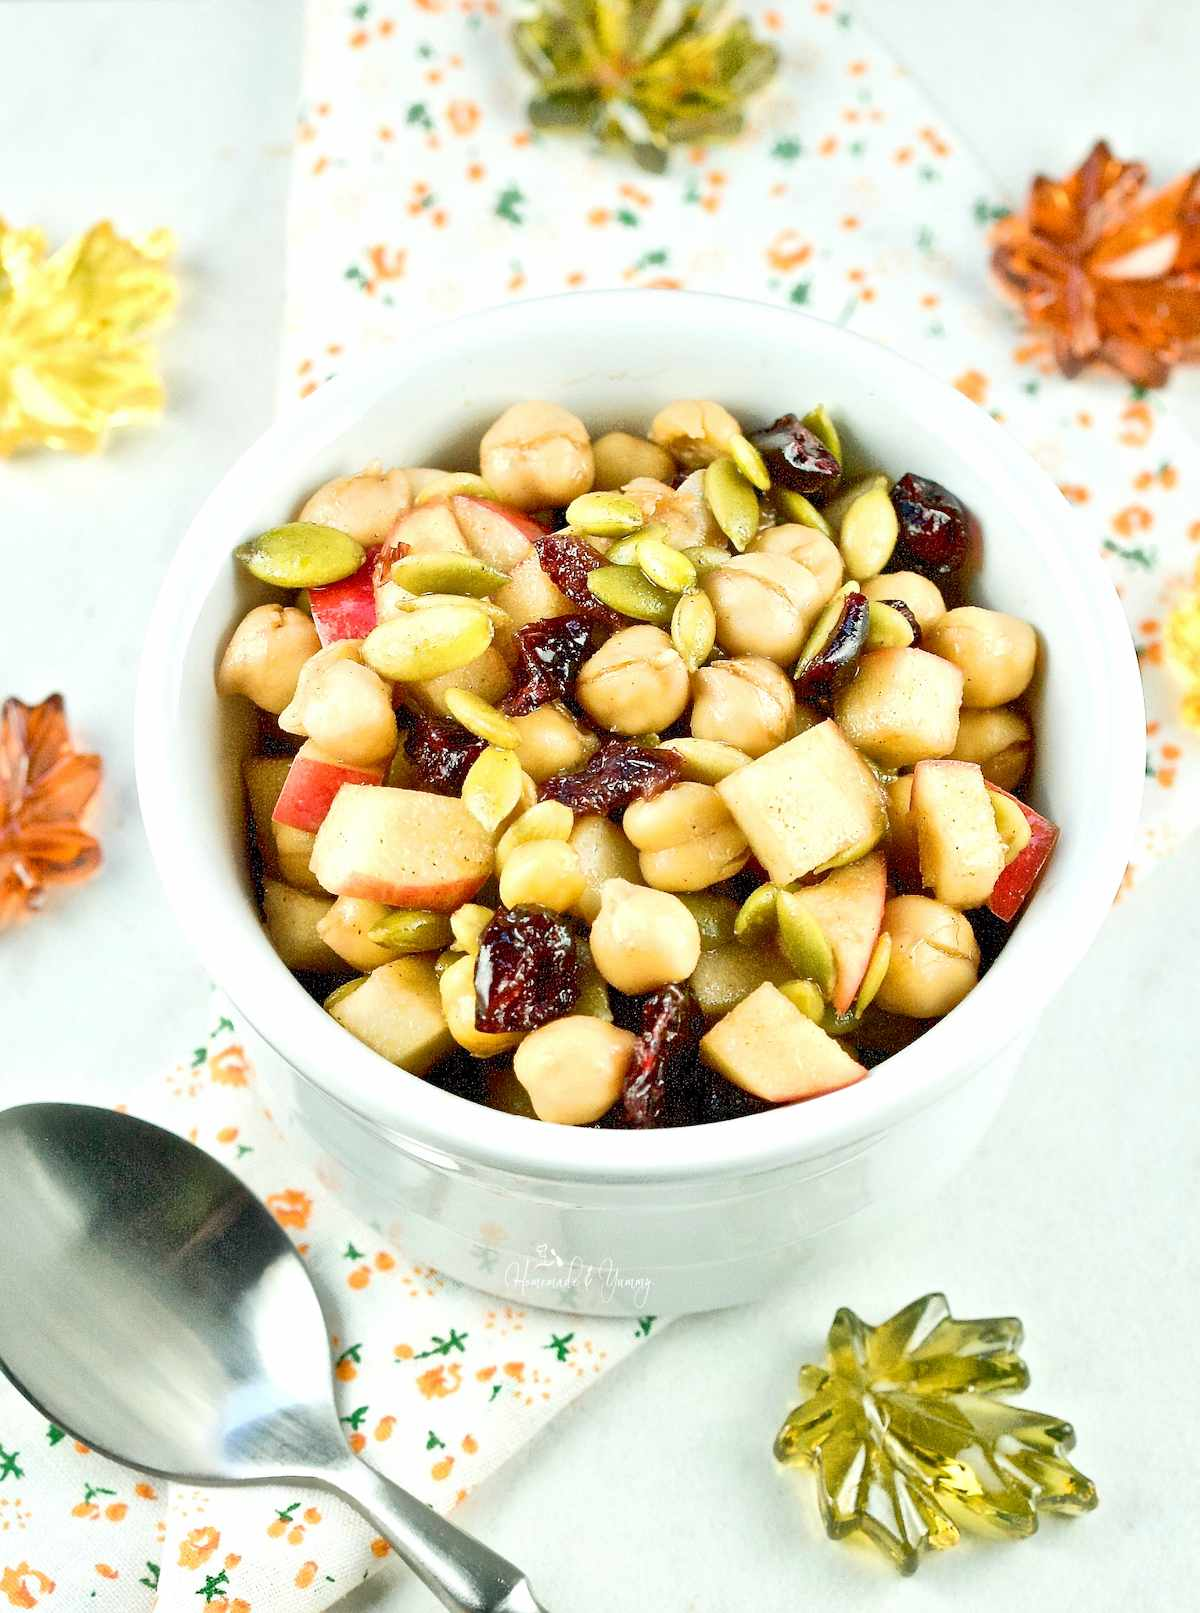 Apple Chickpea Salad in a white bowl ready to eat.